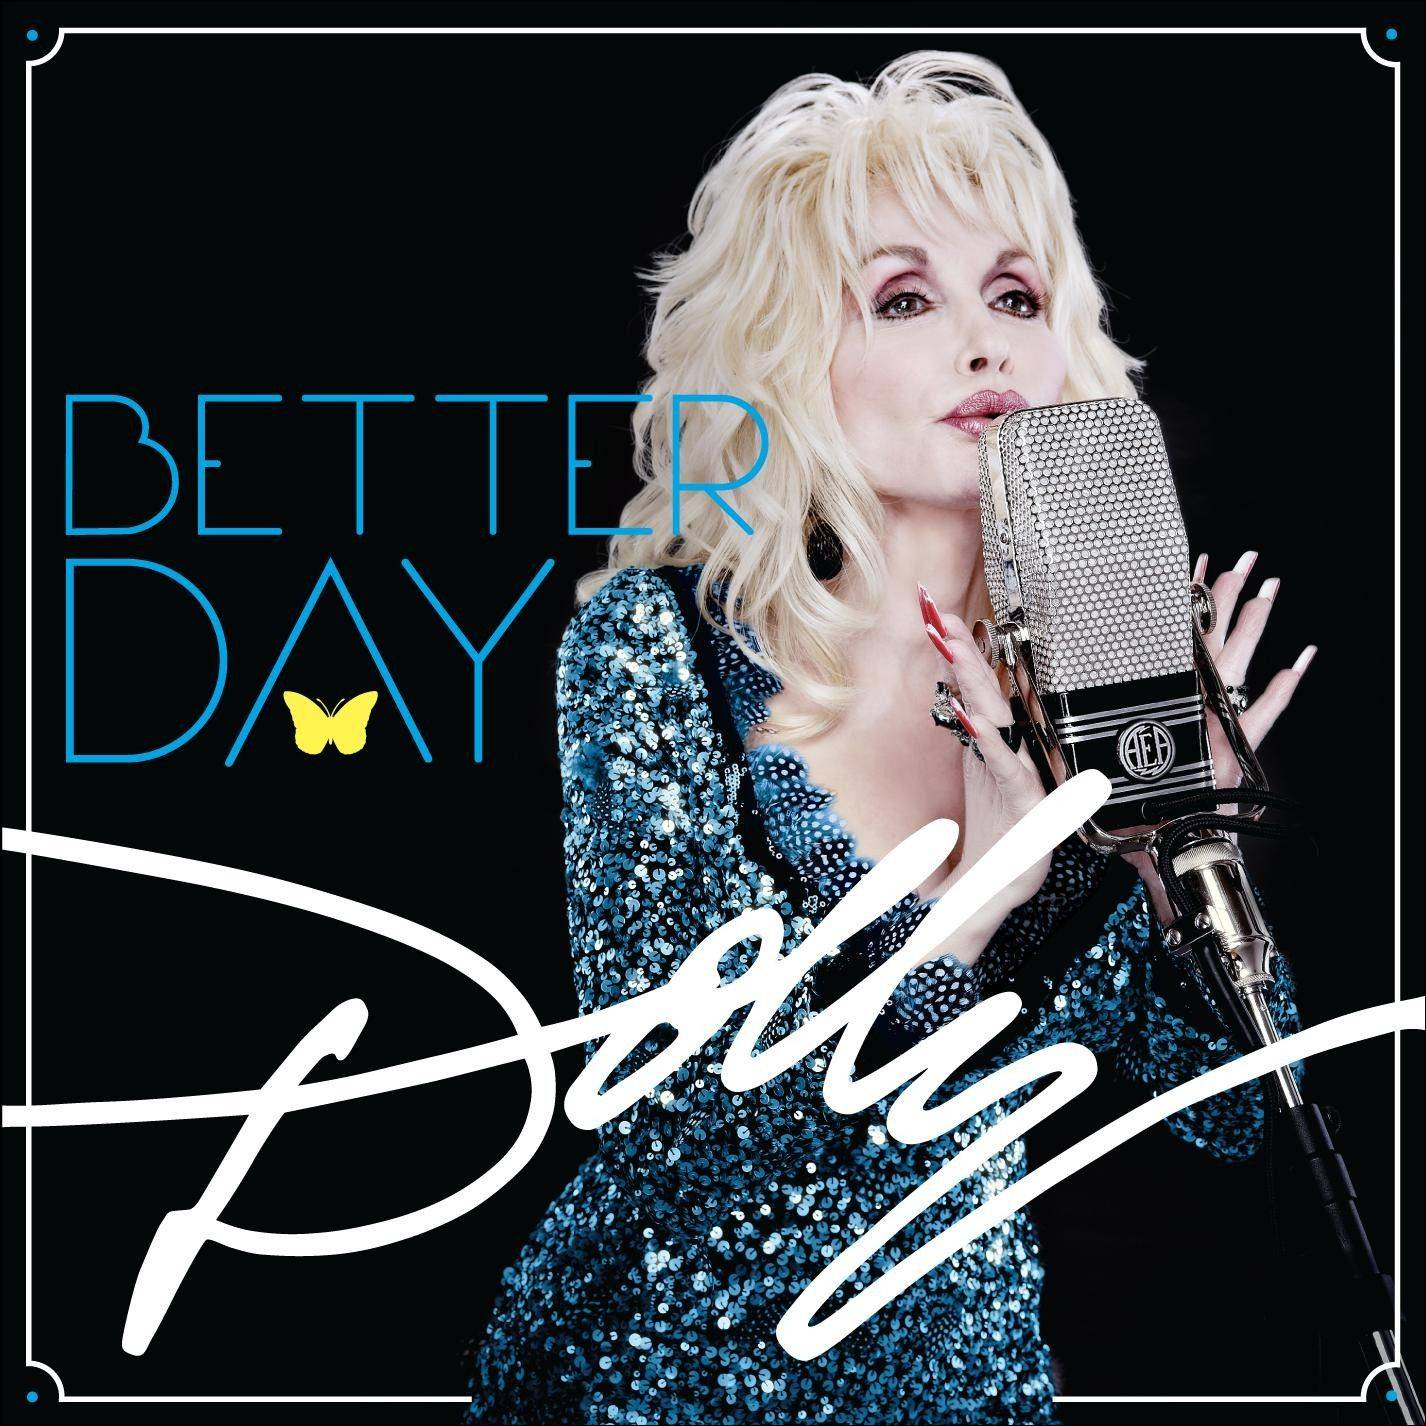 """Better Day"" highlights Dolly Parton's periodic desire to make huge social statements."